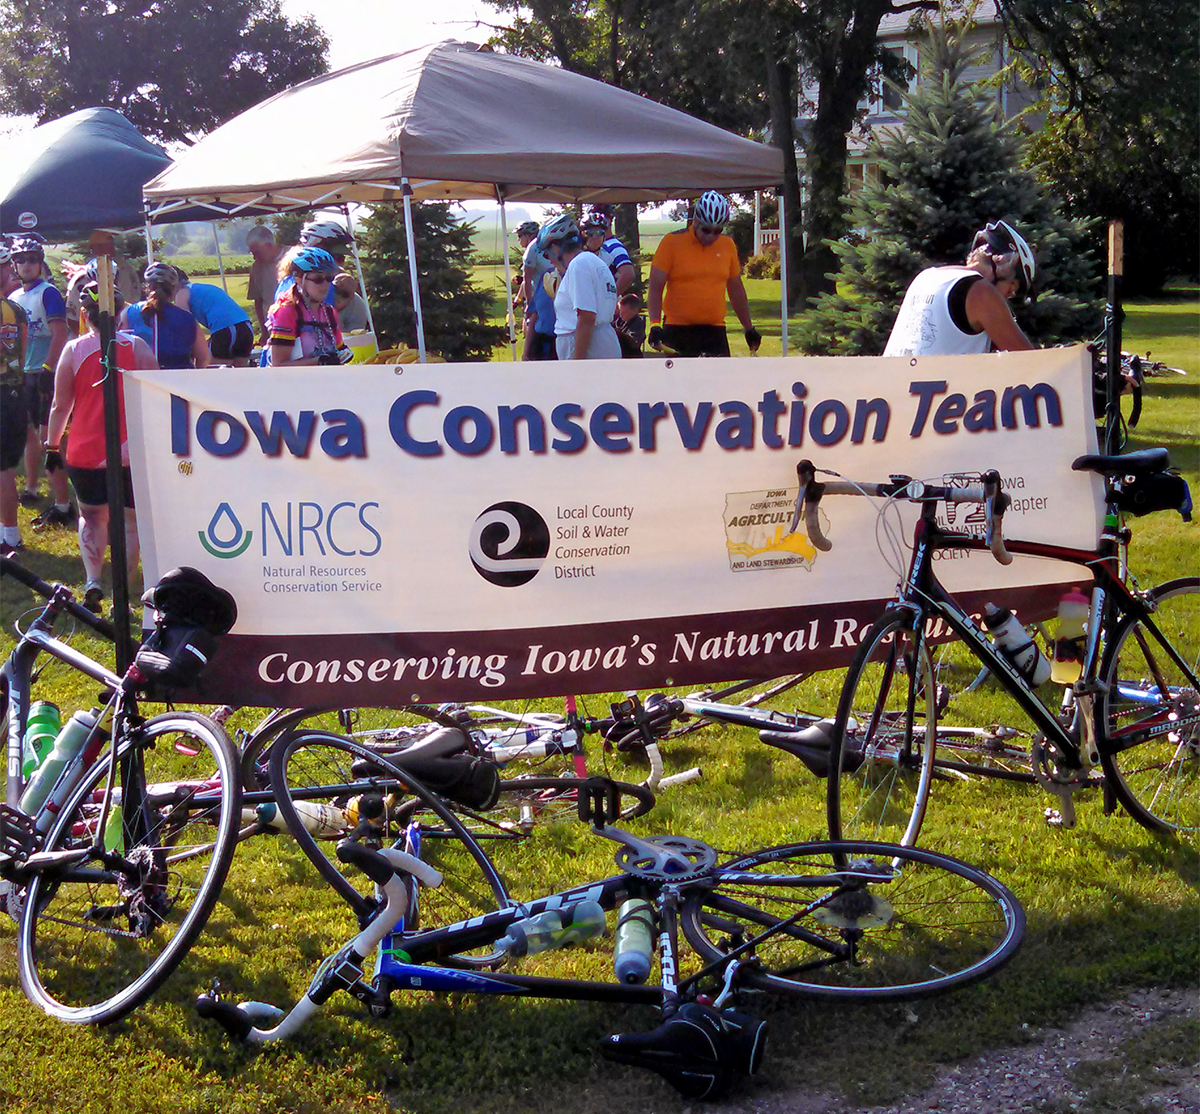 On the first day of RAGBRAI 2014, the Iowa Conservation Tent was packed near Sheldon.